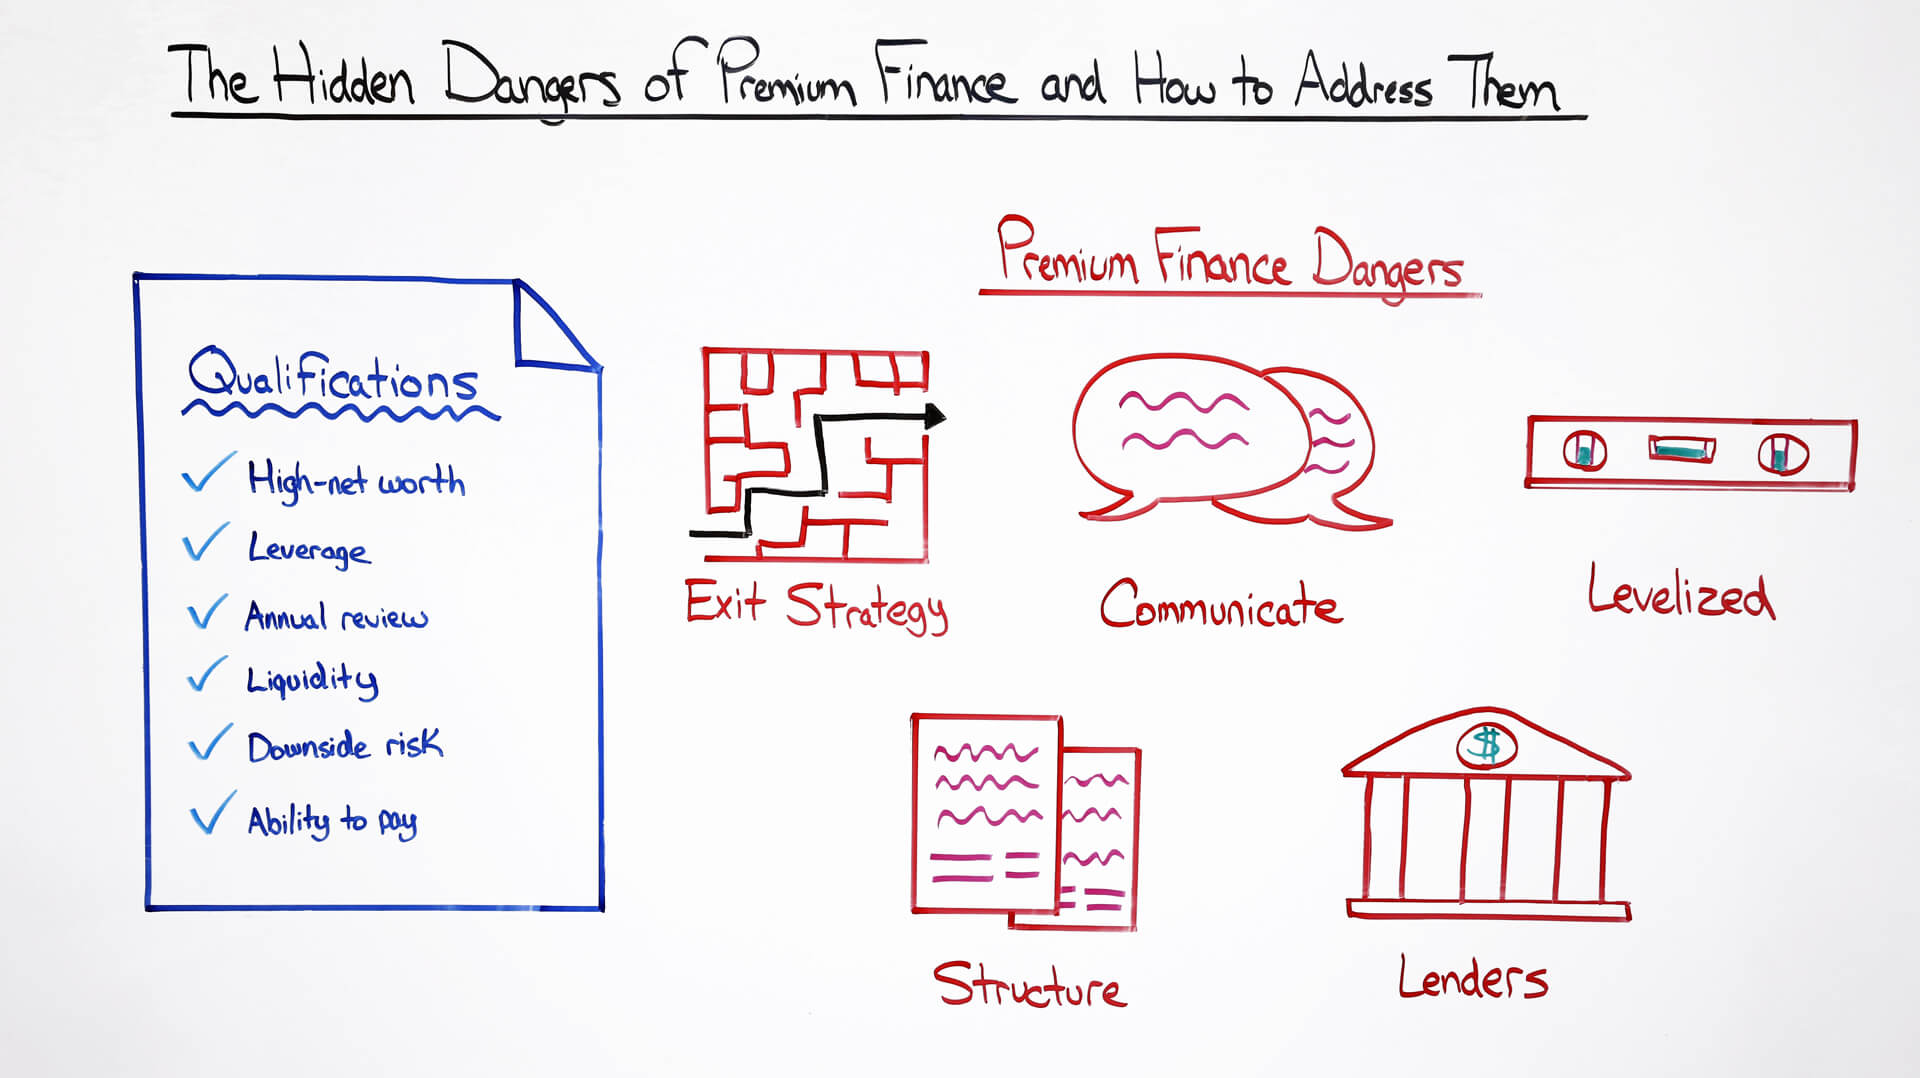 the hidden dangers of premium finance and how to address them